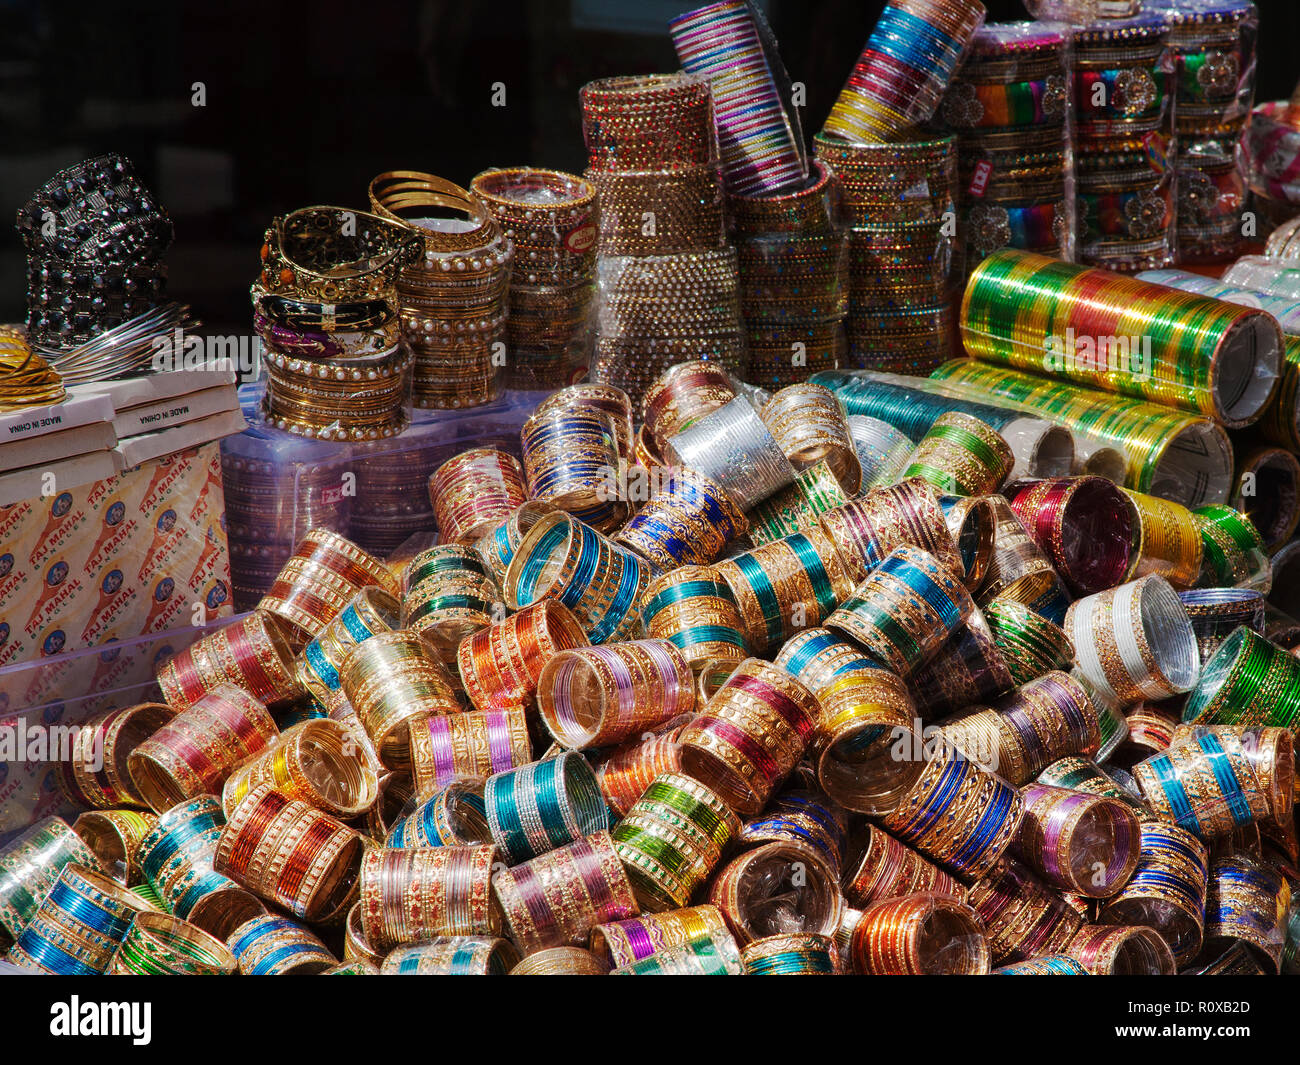 Colorful Indian and Oriental bangles in shop display the broadway southall london 'Little India' - Stock Image